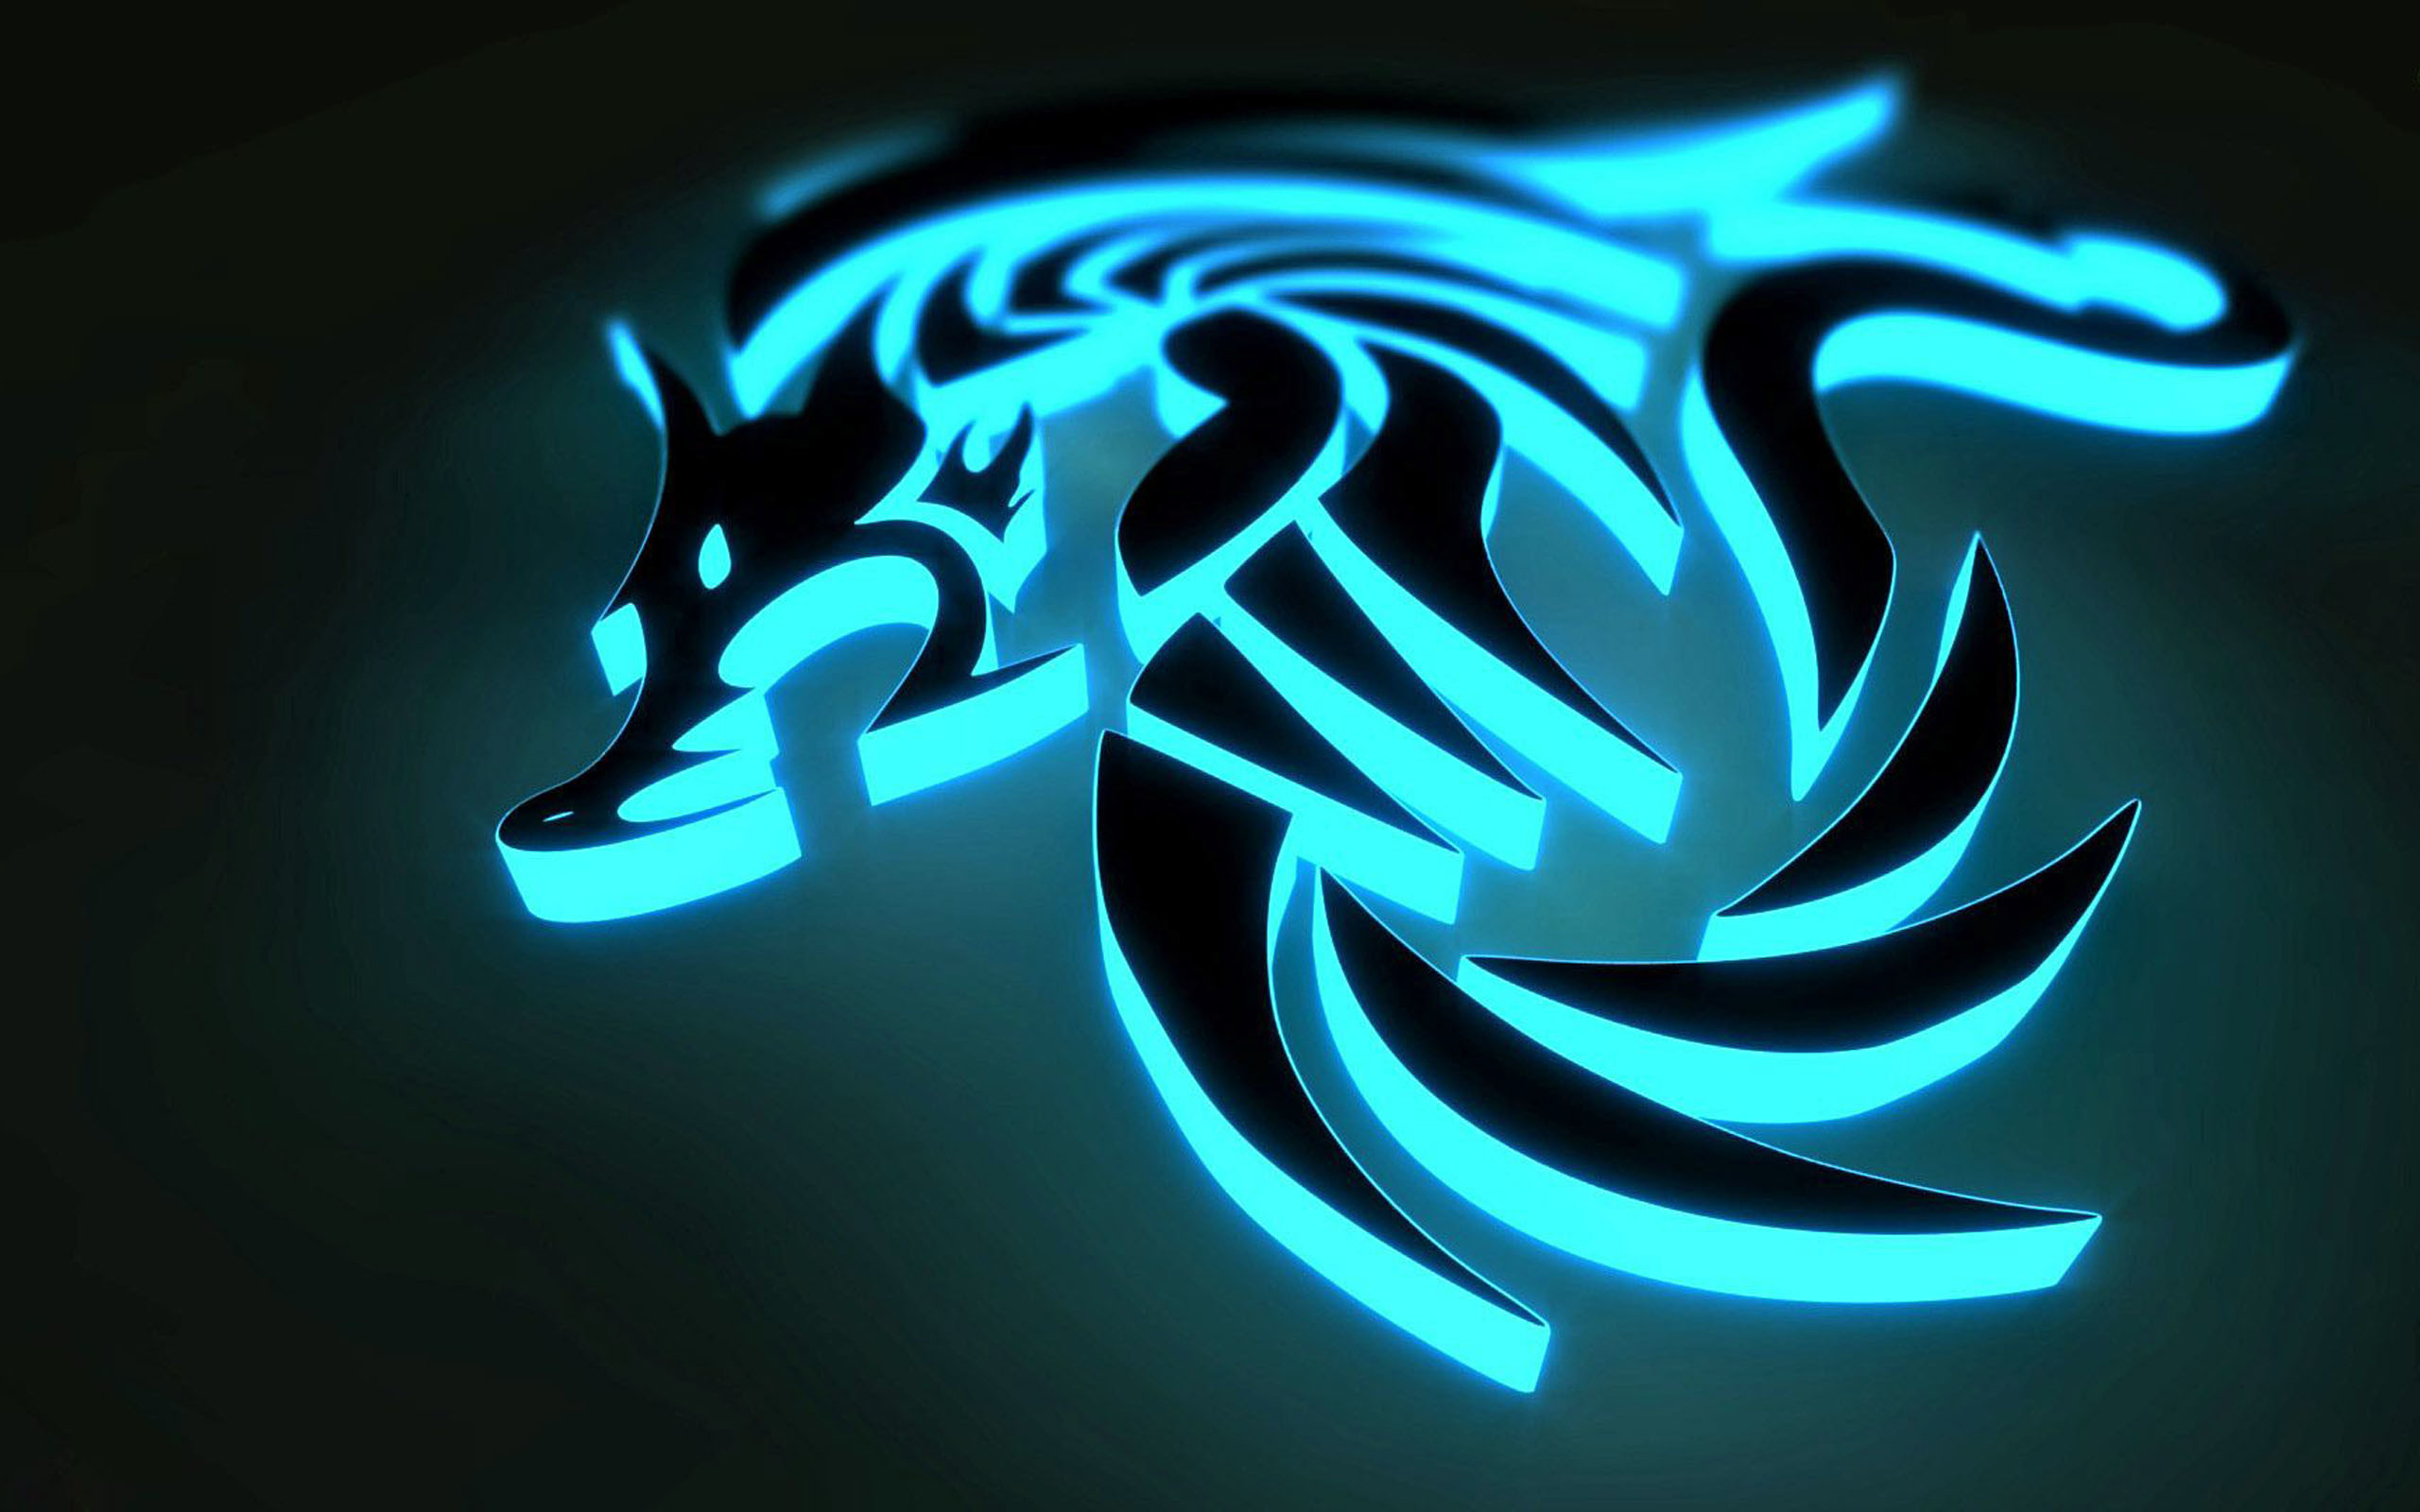 Bright Wallpapers For Iphone 6 Tribal Wallpaper Designs 183 ①